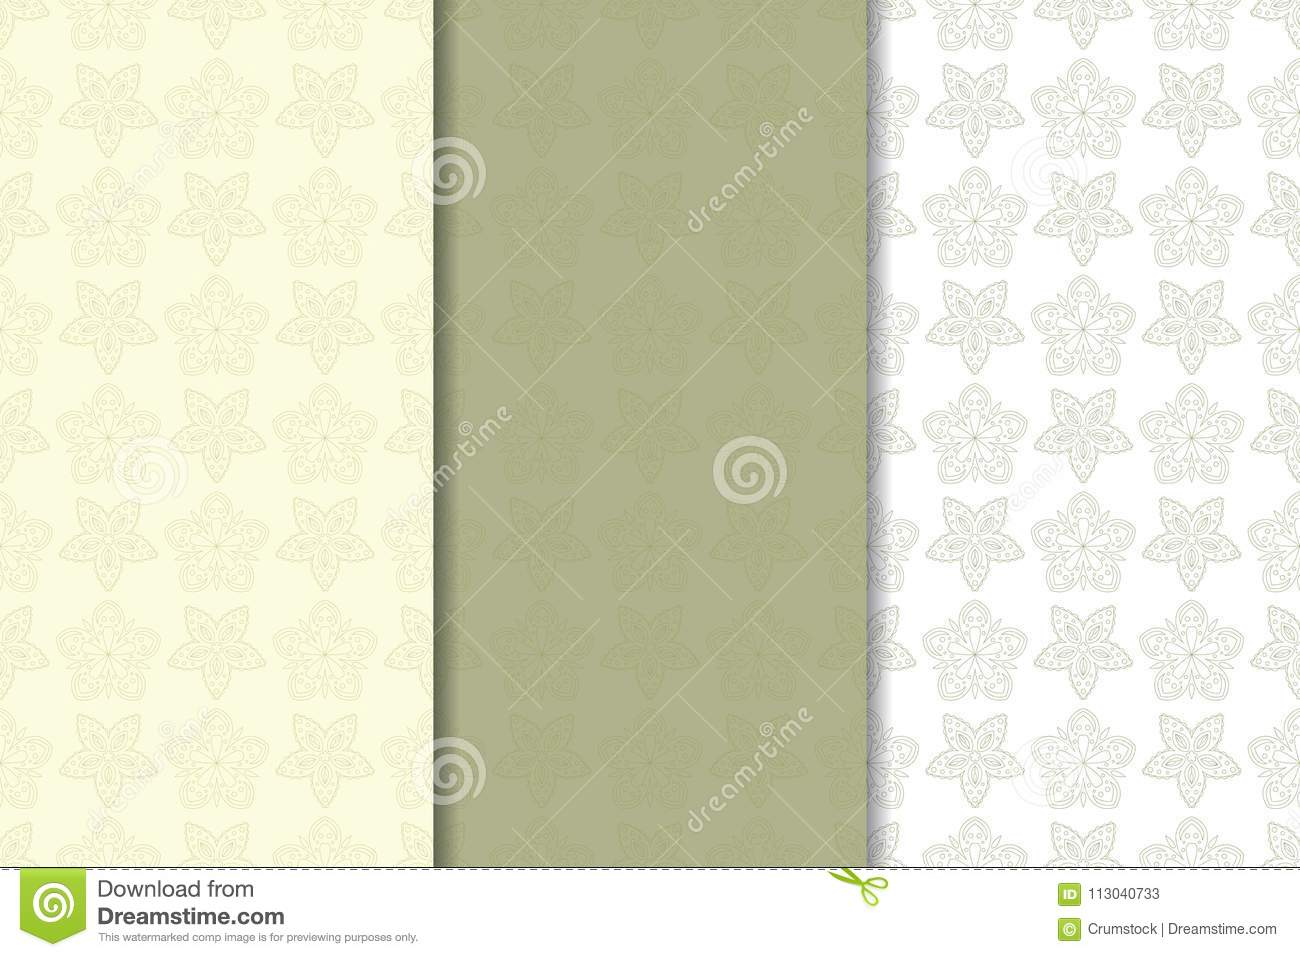 Set of olive green floral backgrounds. Seamless patterns